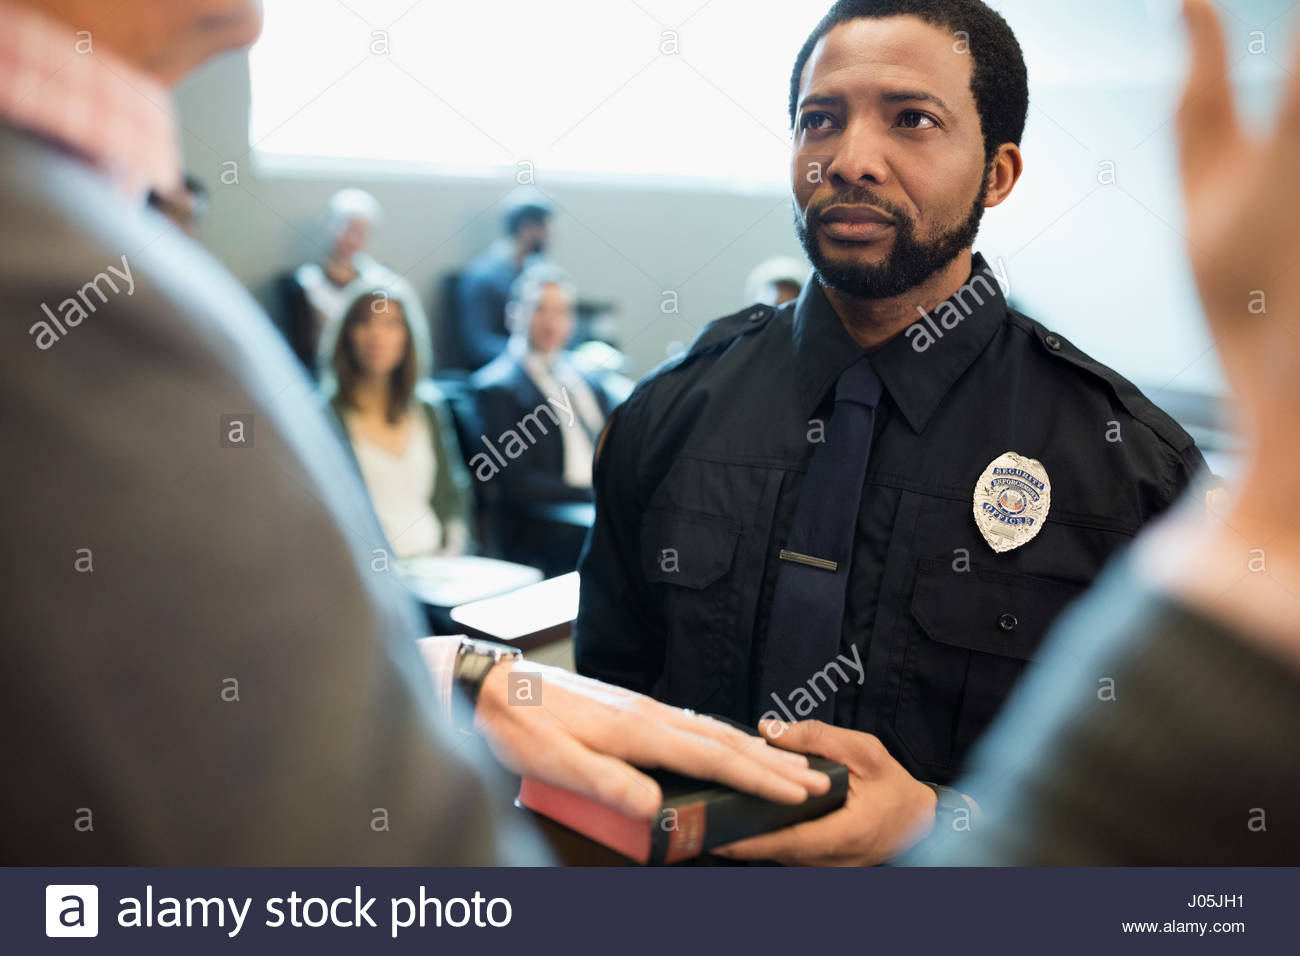 Male bailiff holding bible for witness in legal trial courtroom - Stock Image